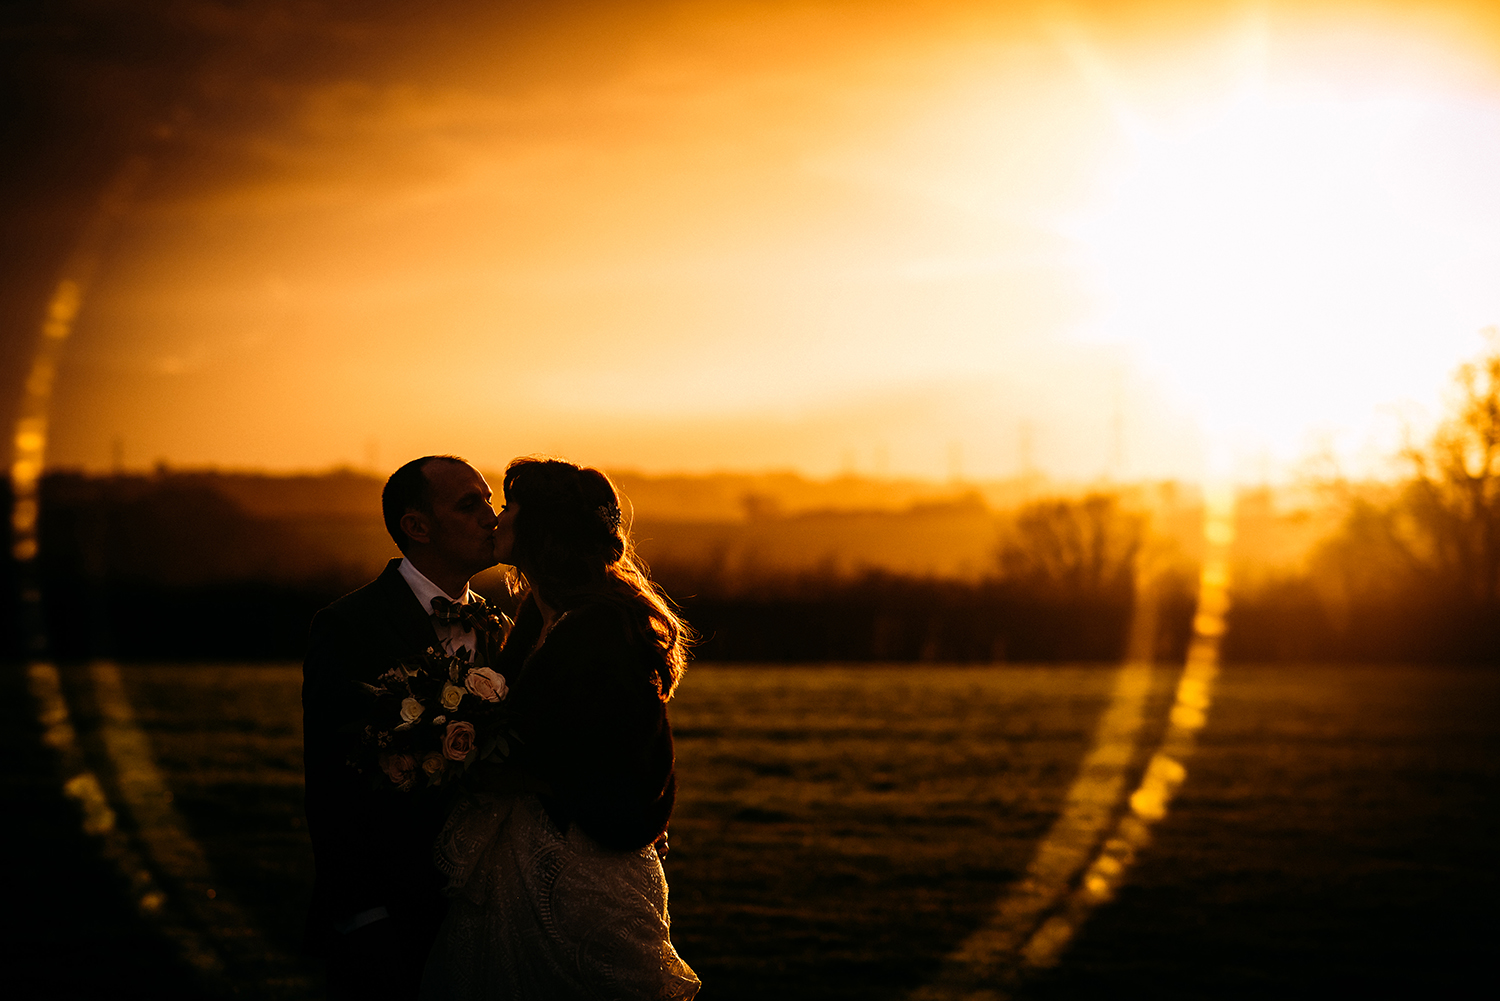 Bride and groom kissing at sunset with big lens flare